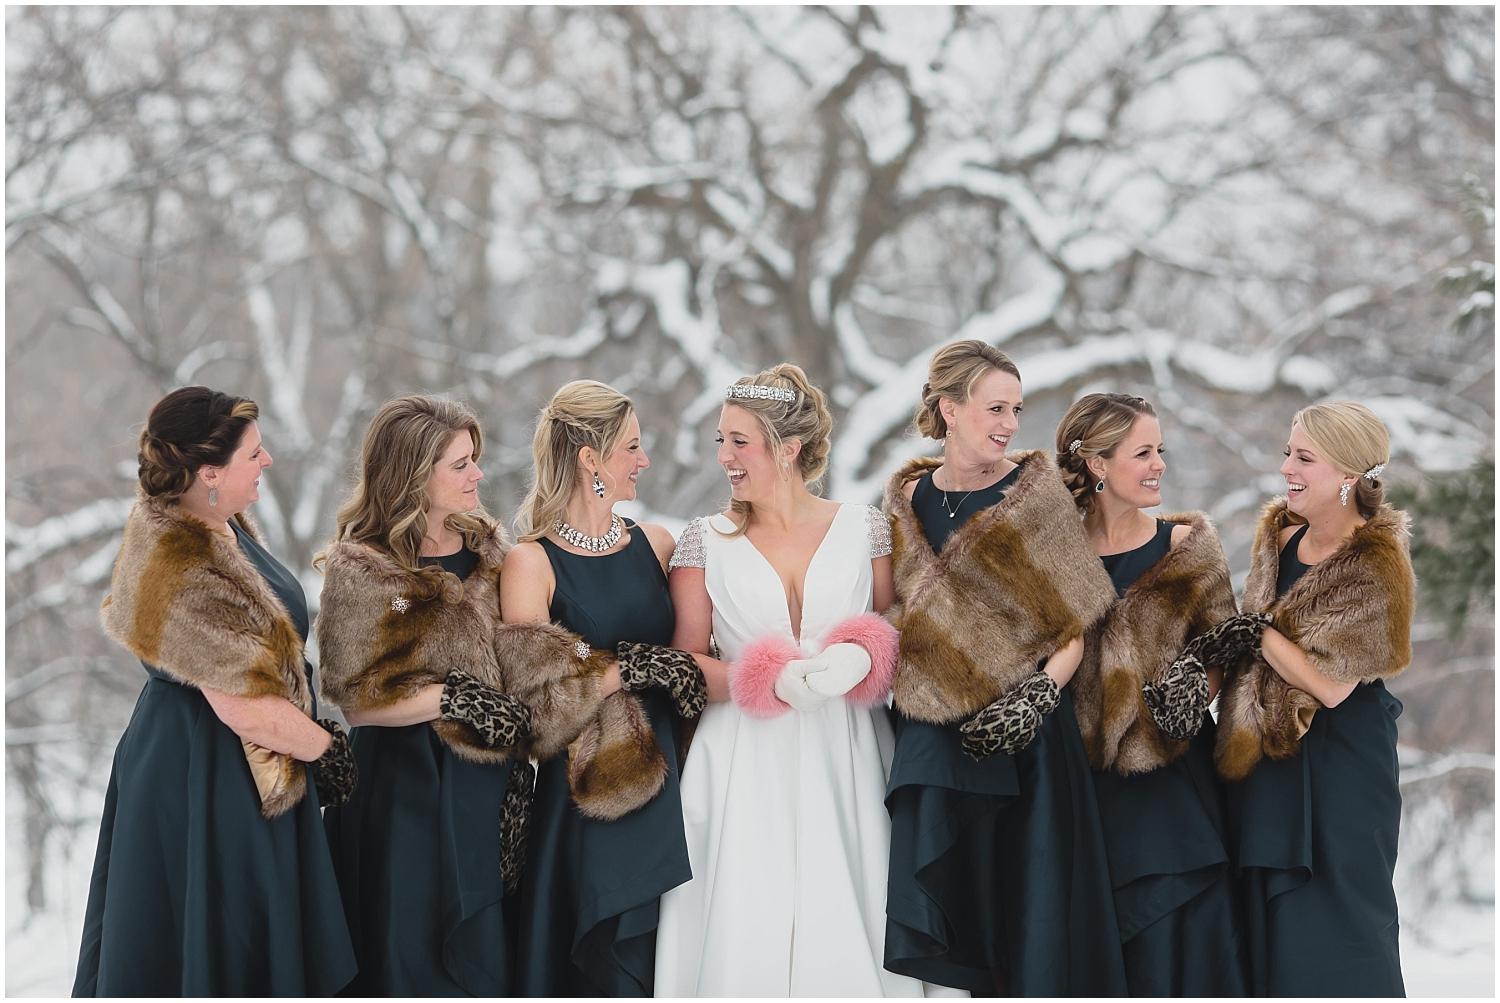 Minnesota Wedding Planner, Mpls Wedding Planner, Machine Shop MPLS, Mpls Wedding Venue,   Bride with her bridesmaids in the Winter Snow